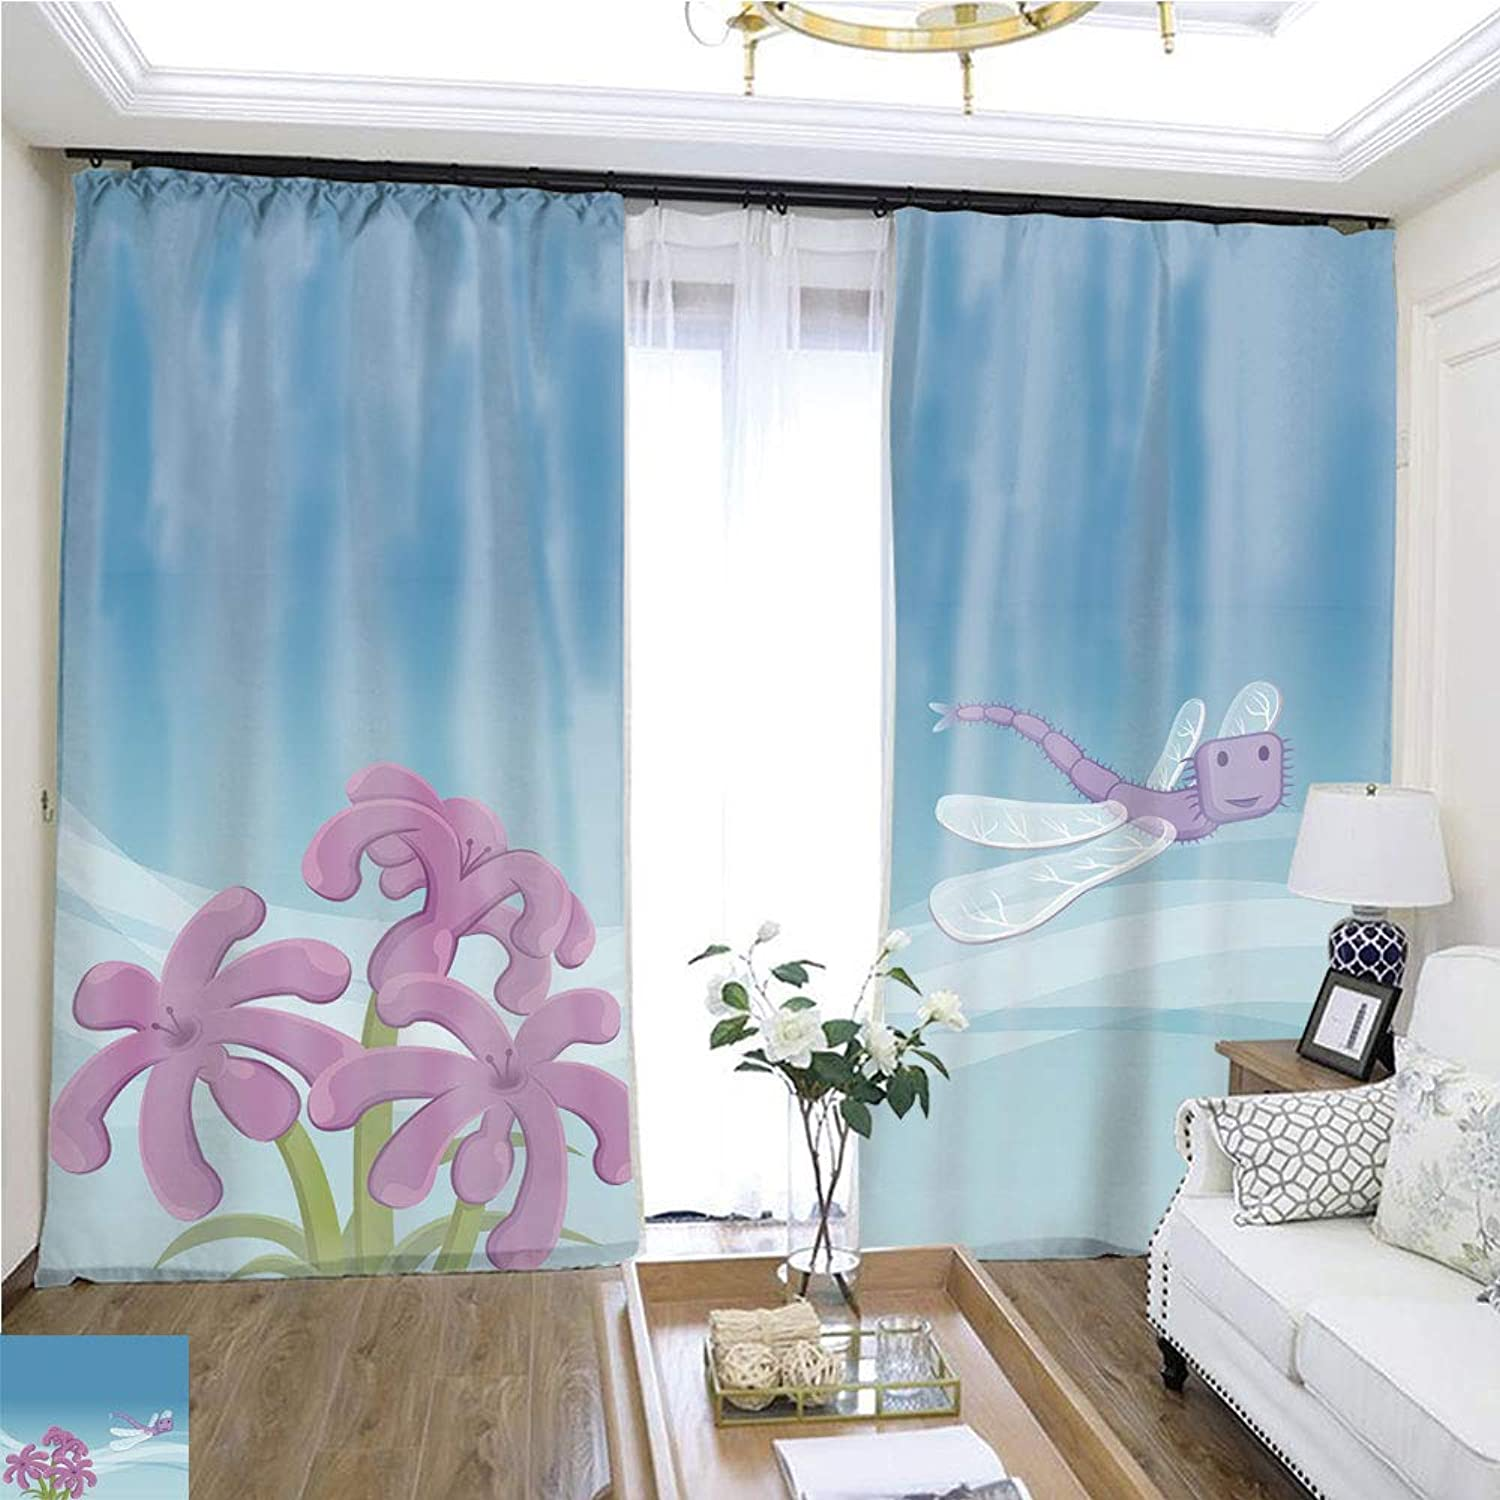 Air Port Screen Dragon Fly W96 x L84 Provide Heat Highprecision Curtains for bedrooms Living Rooms Kitchens etc.